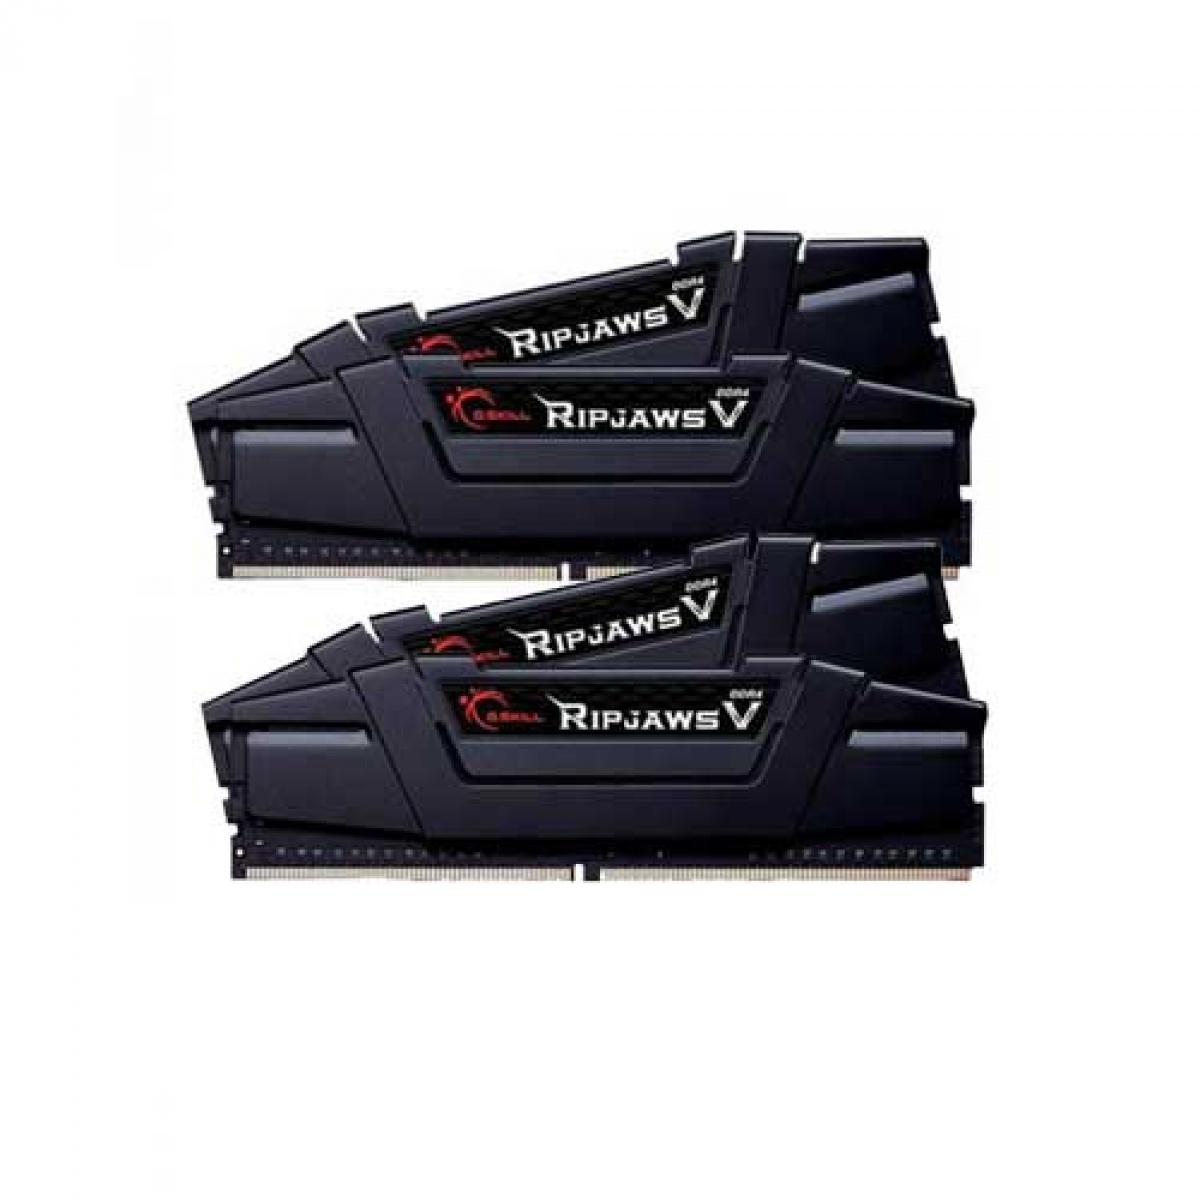 Memorie Ripjaws V, DDR4, 4 x 8 GB, 3000 MHz, CL14, kit